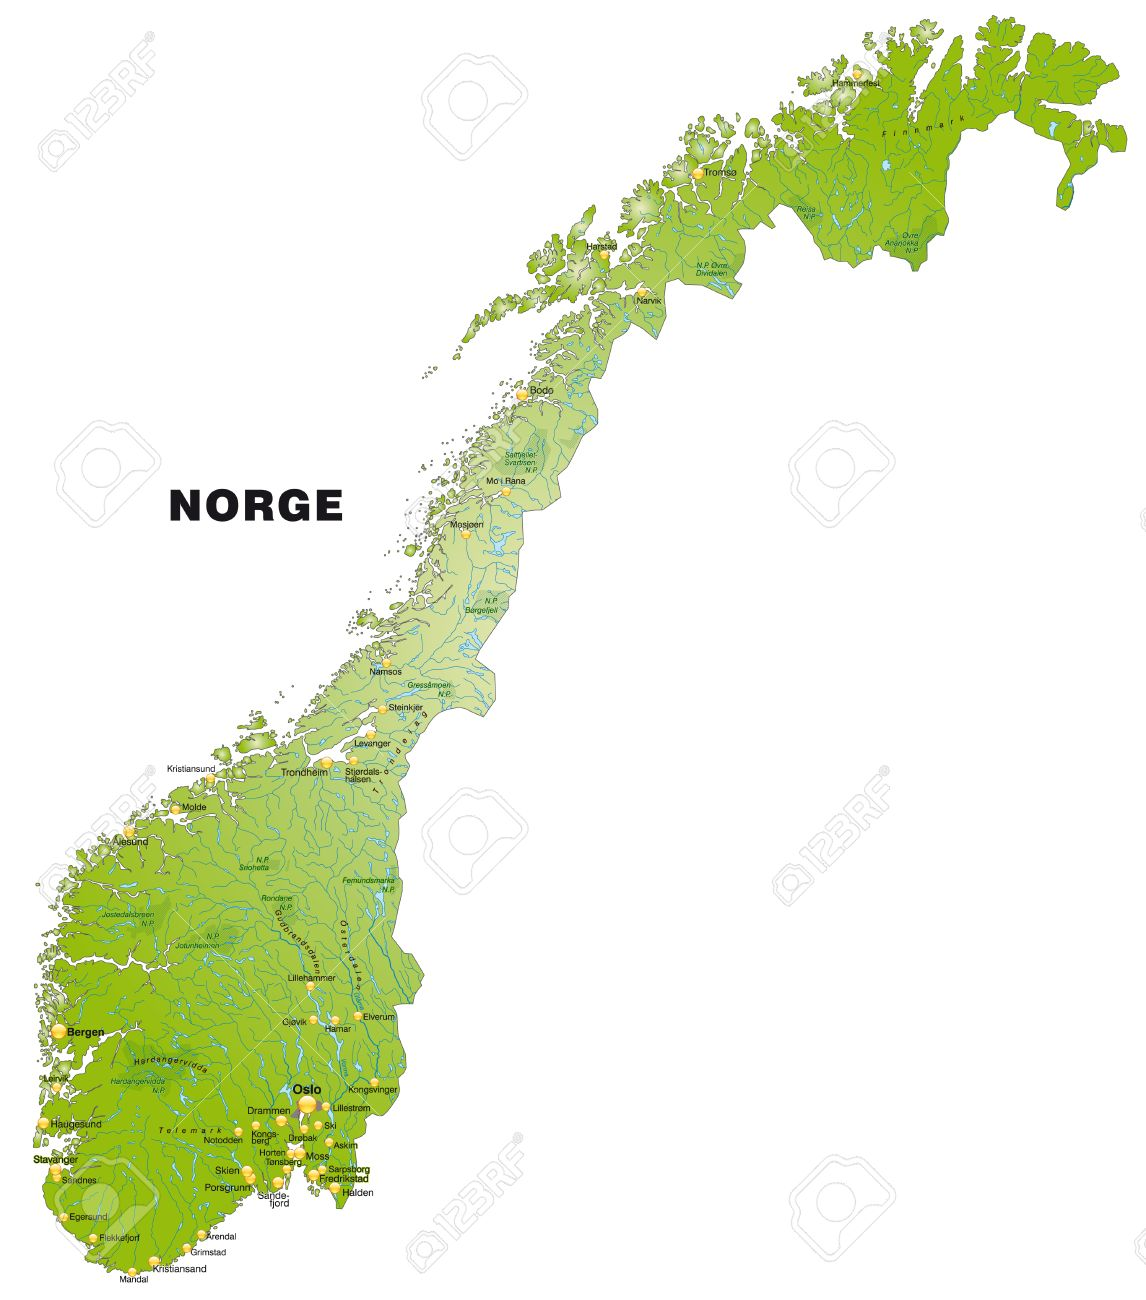 Map Of Norway As An Overview Map In Green Royalty Free Cliparts - Norway map picture